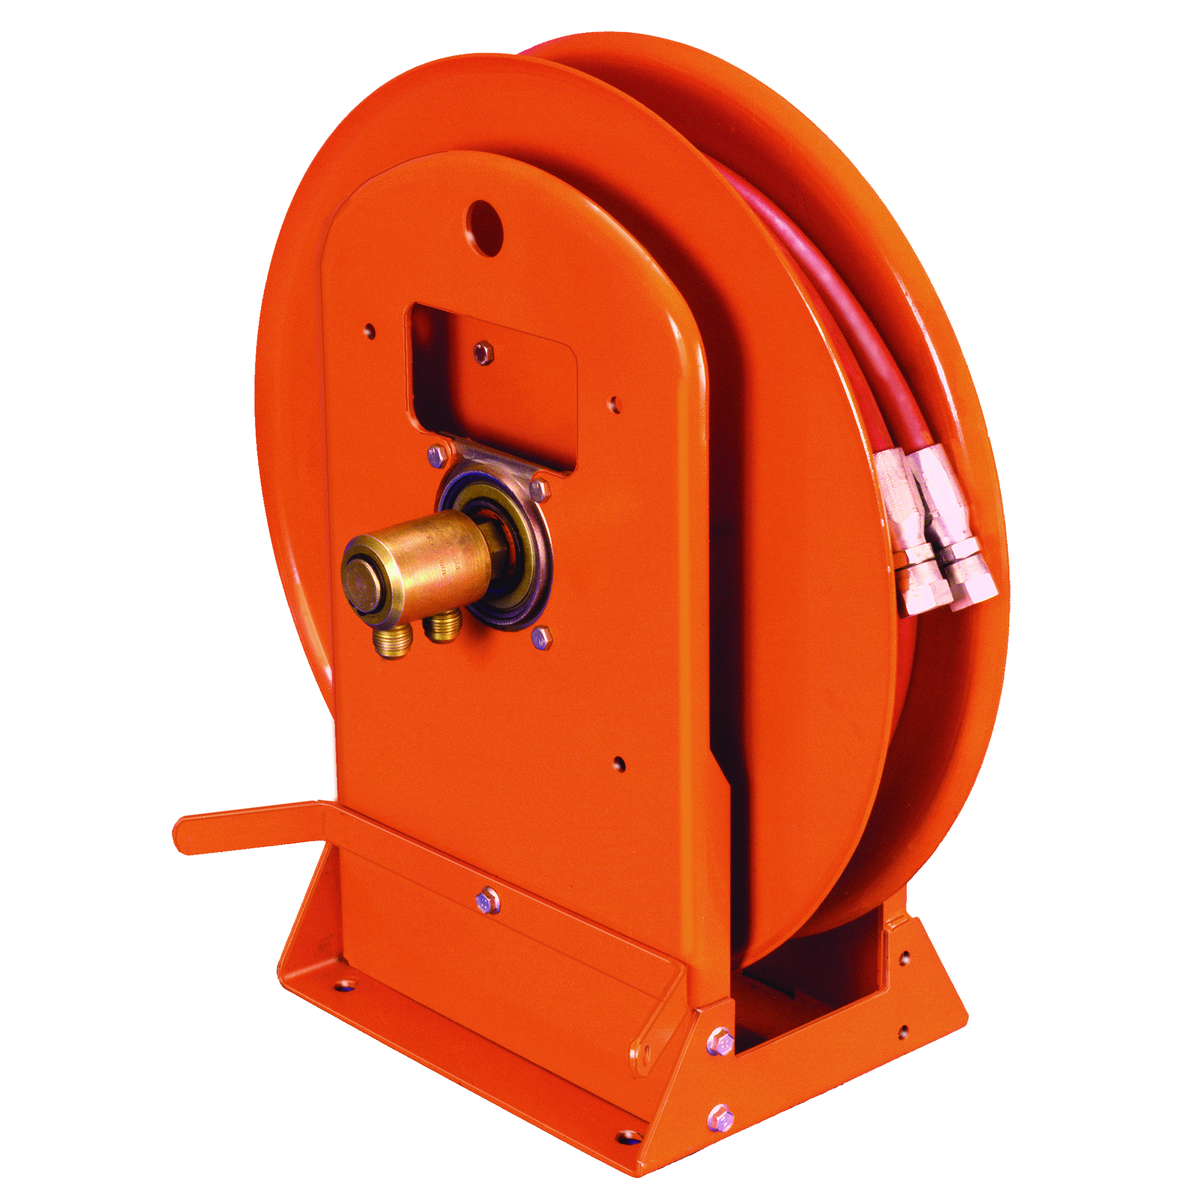 K28751-6-3 | Hydraulic Dual Hose | Hose Reels | Cable/Cord/Hose ...